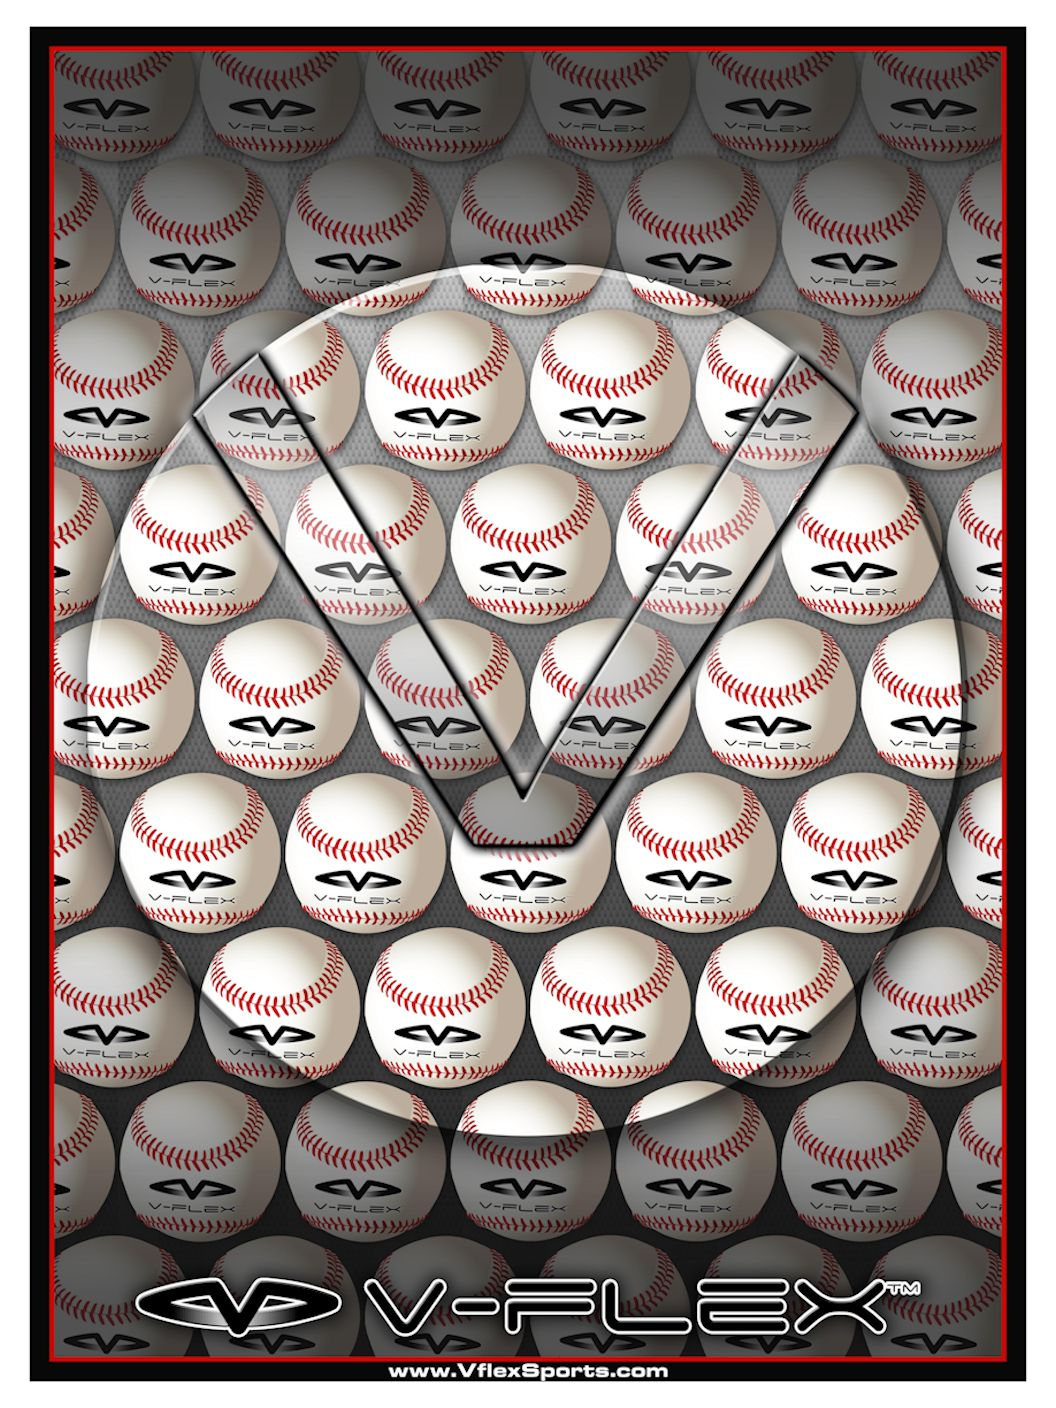 baseball-strike-zone-poster-the-sum-of-all-parts.jpg